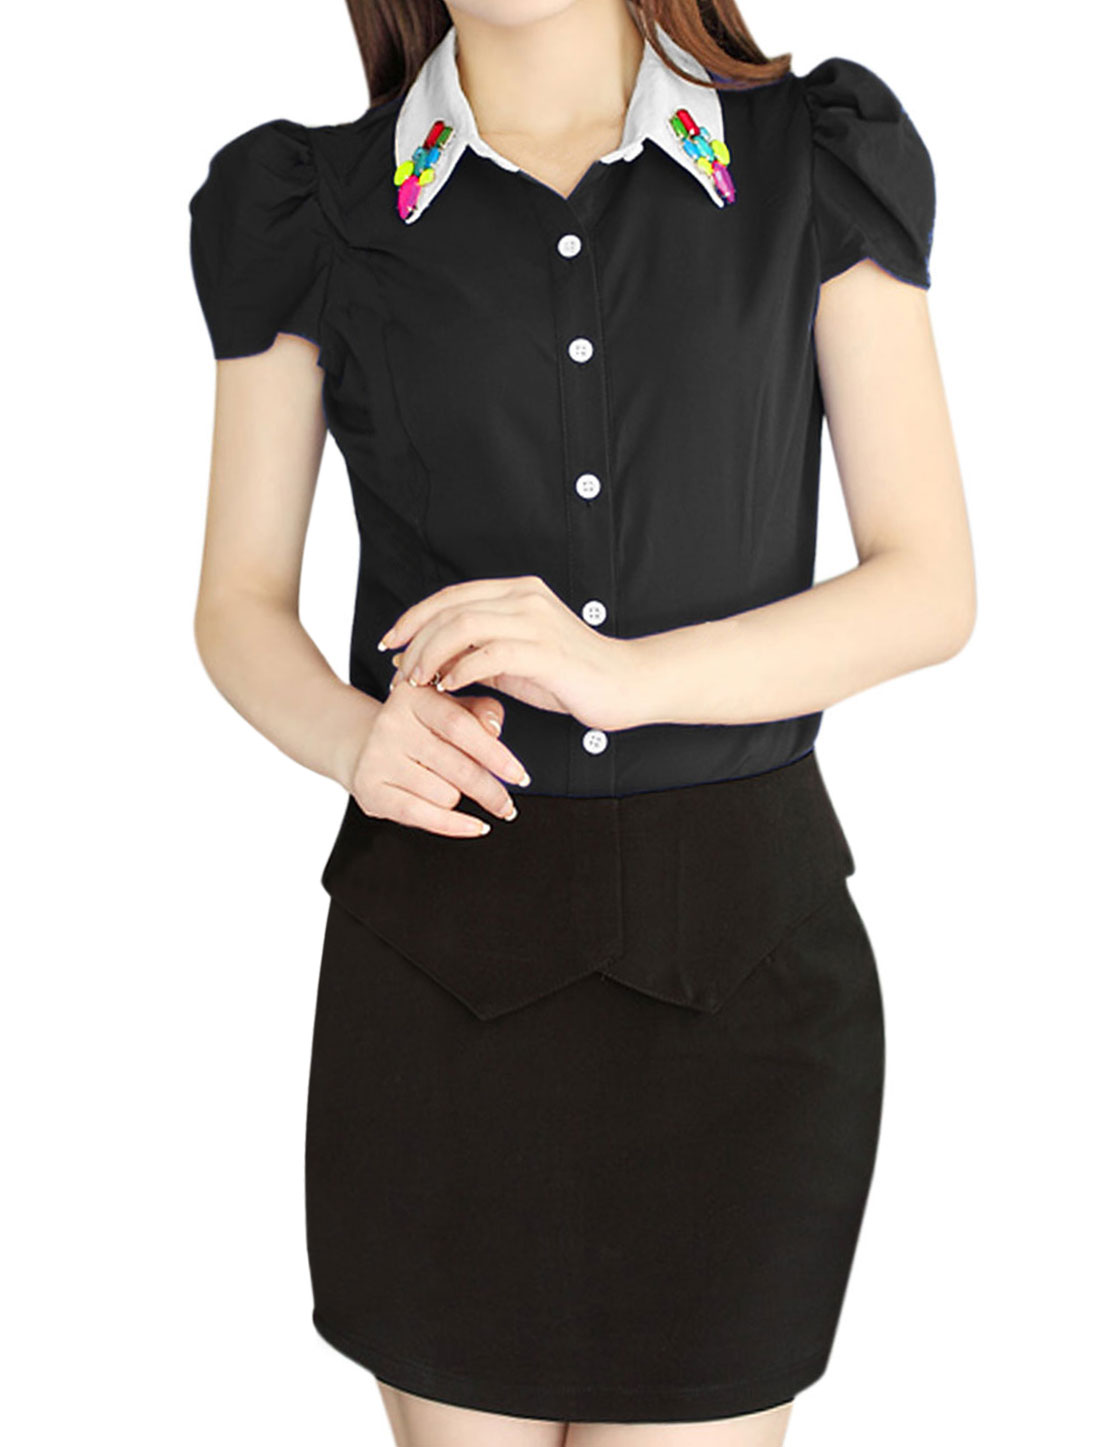 Lady Puff Sleeve Single Breasted Rhinestone Decor Shirt Black L